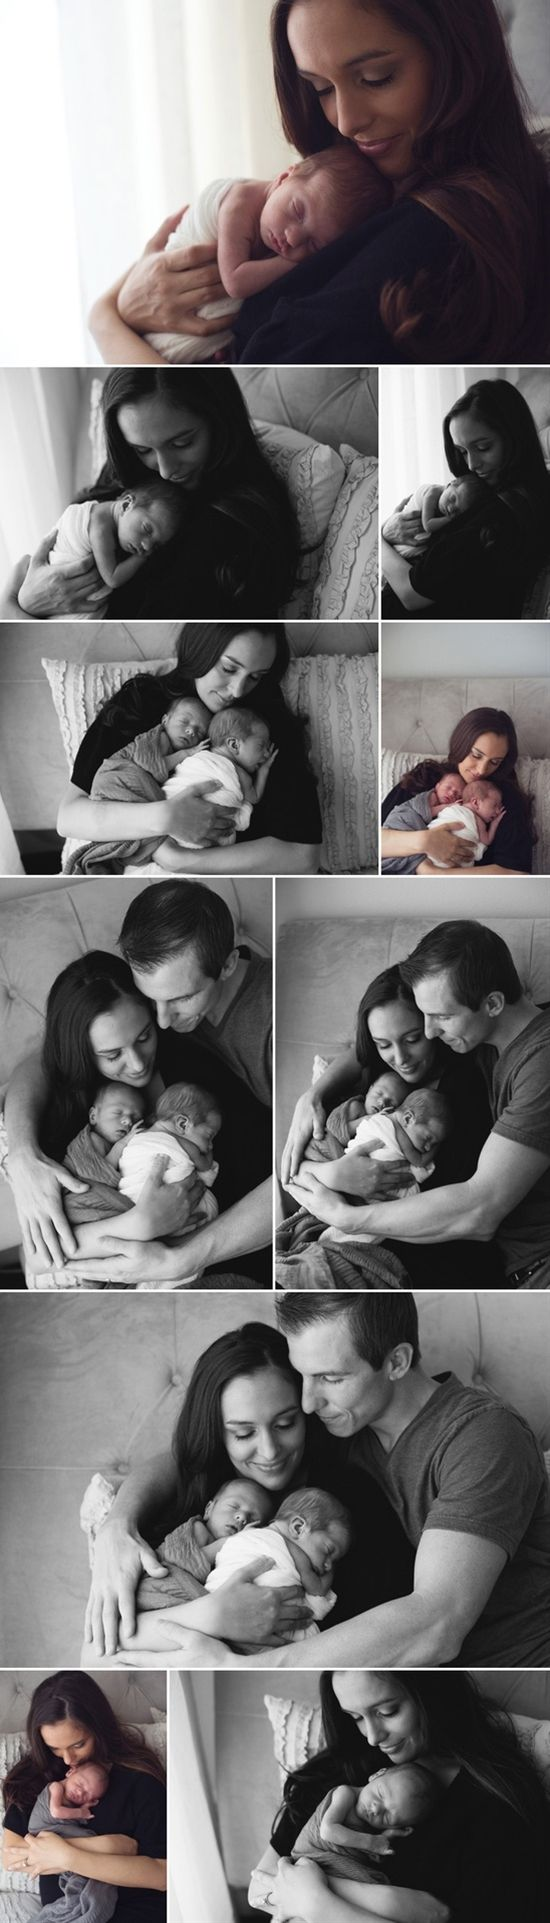 newborn baby love the picture with the mom and twi